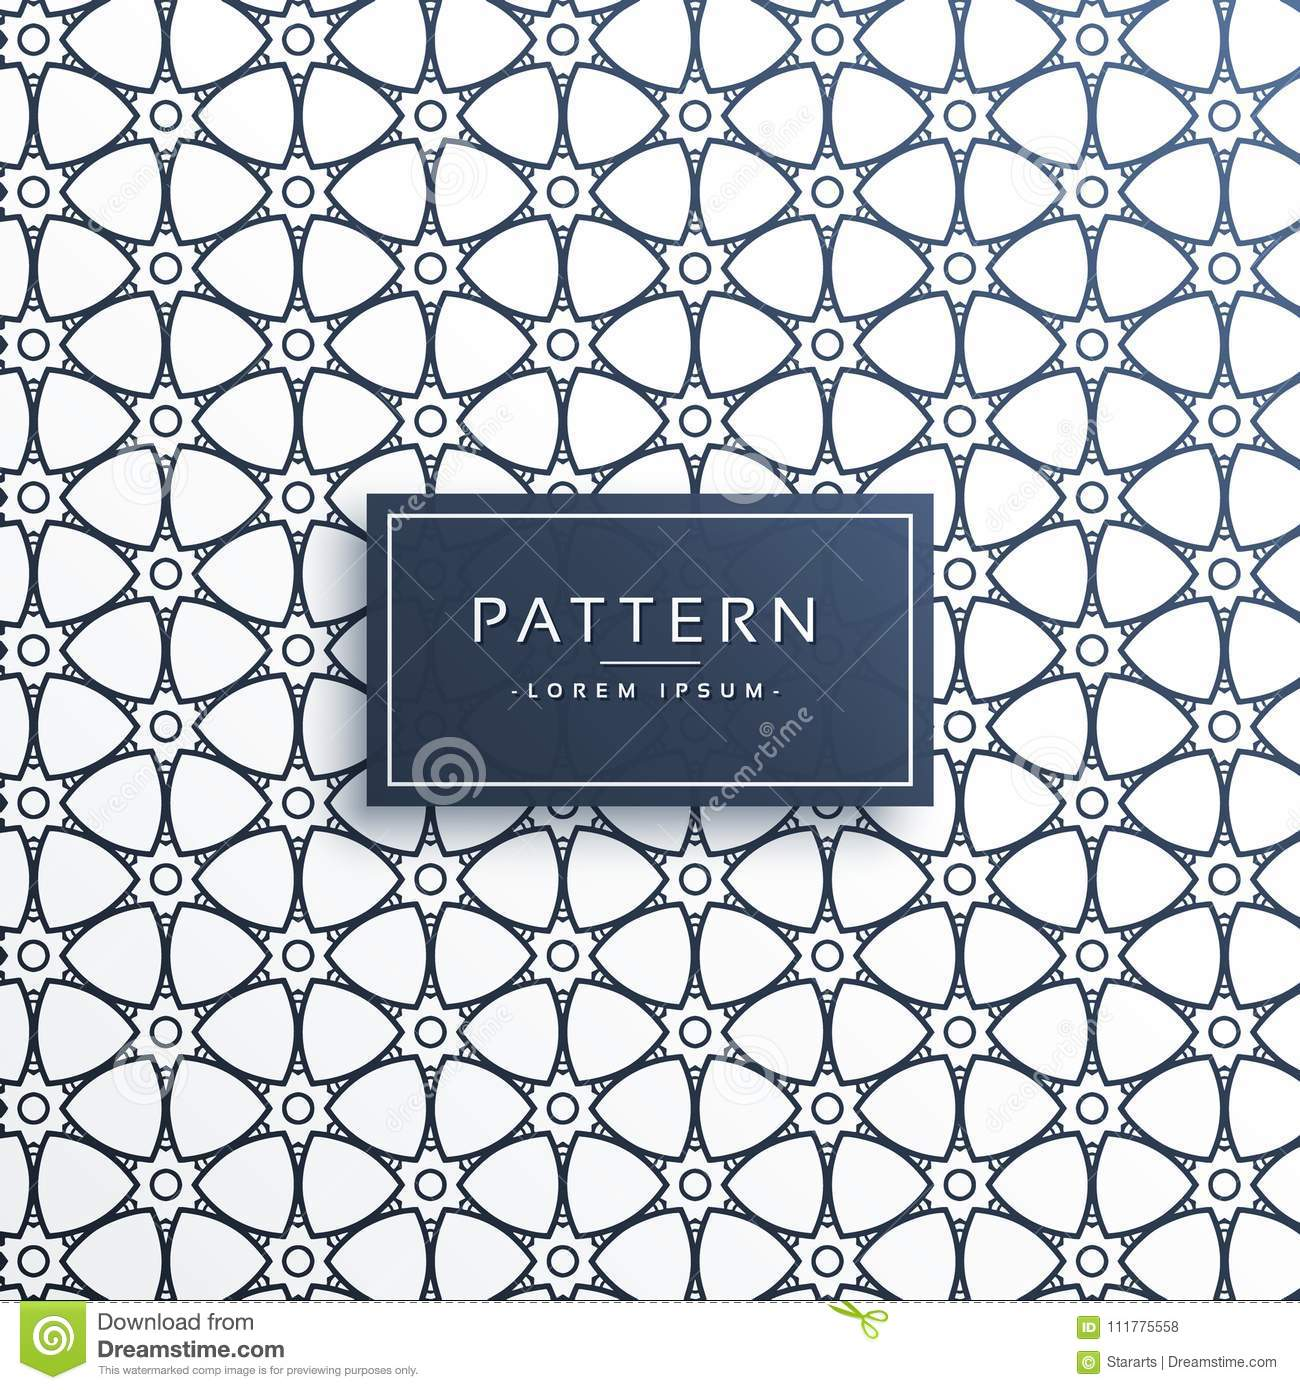 Abstract decorative pattern design background